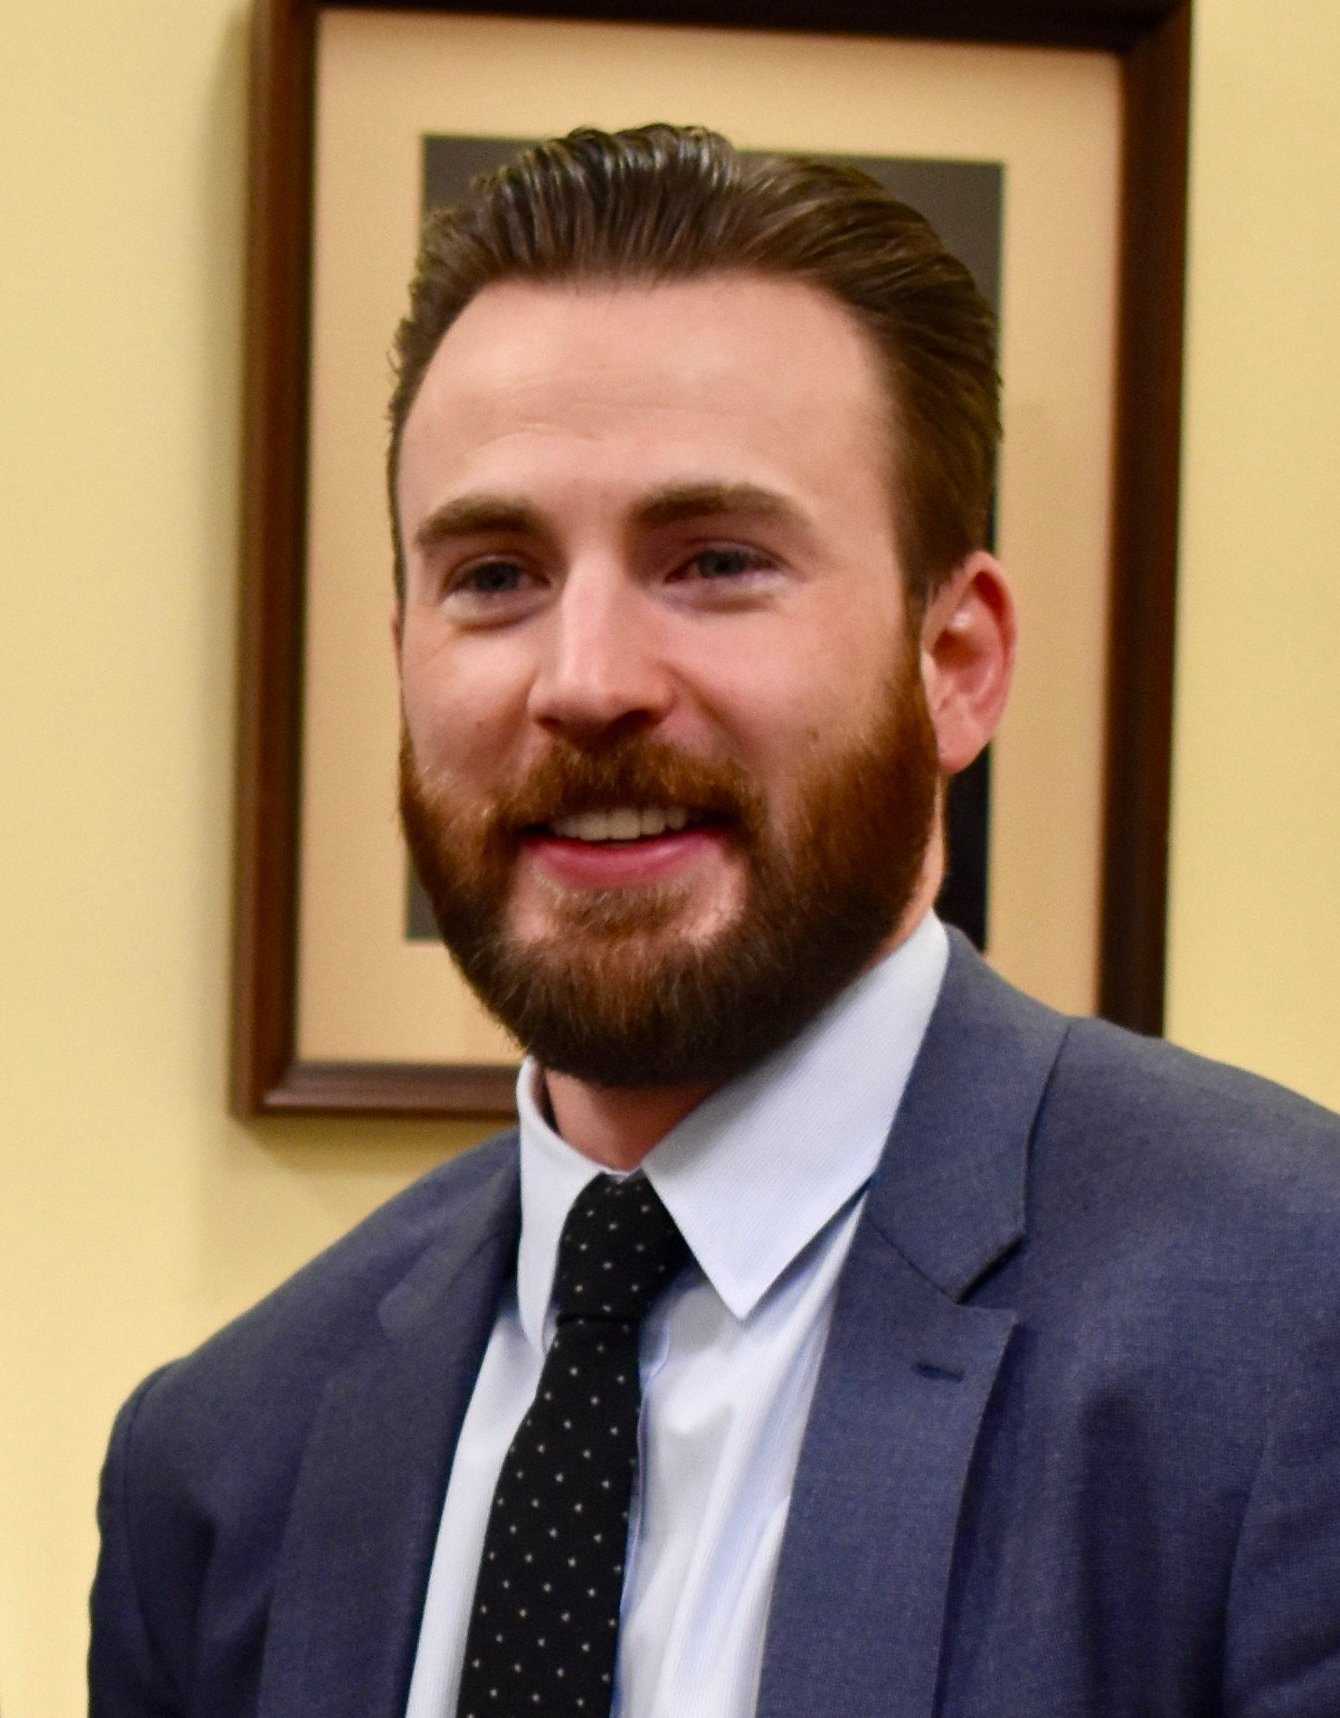 The 39-year old son of father Robert Evans and mother Lisa Evans Chris Evans in 2020 photo. Chris Evans earned a 26 million dollar salary - leaving the net worth at 82 million in 2020